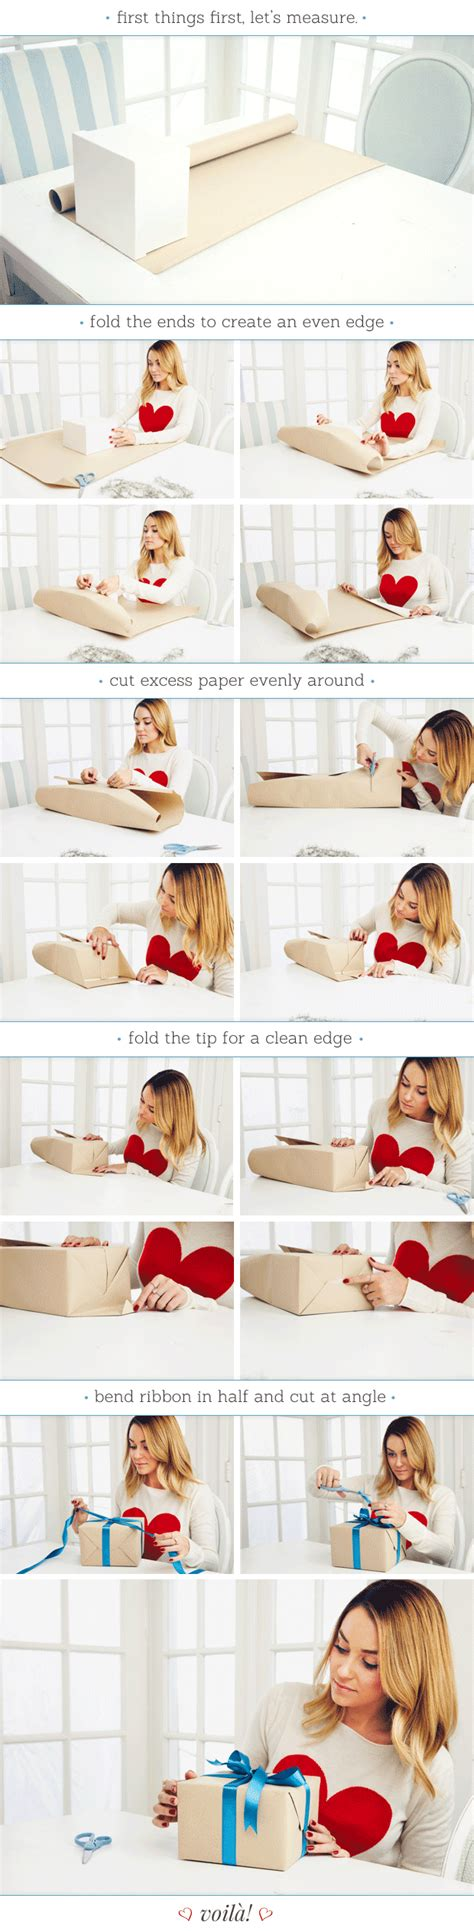 how to wrap a perfect present lauren conrad